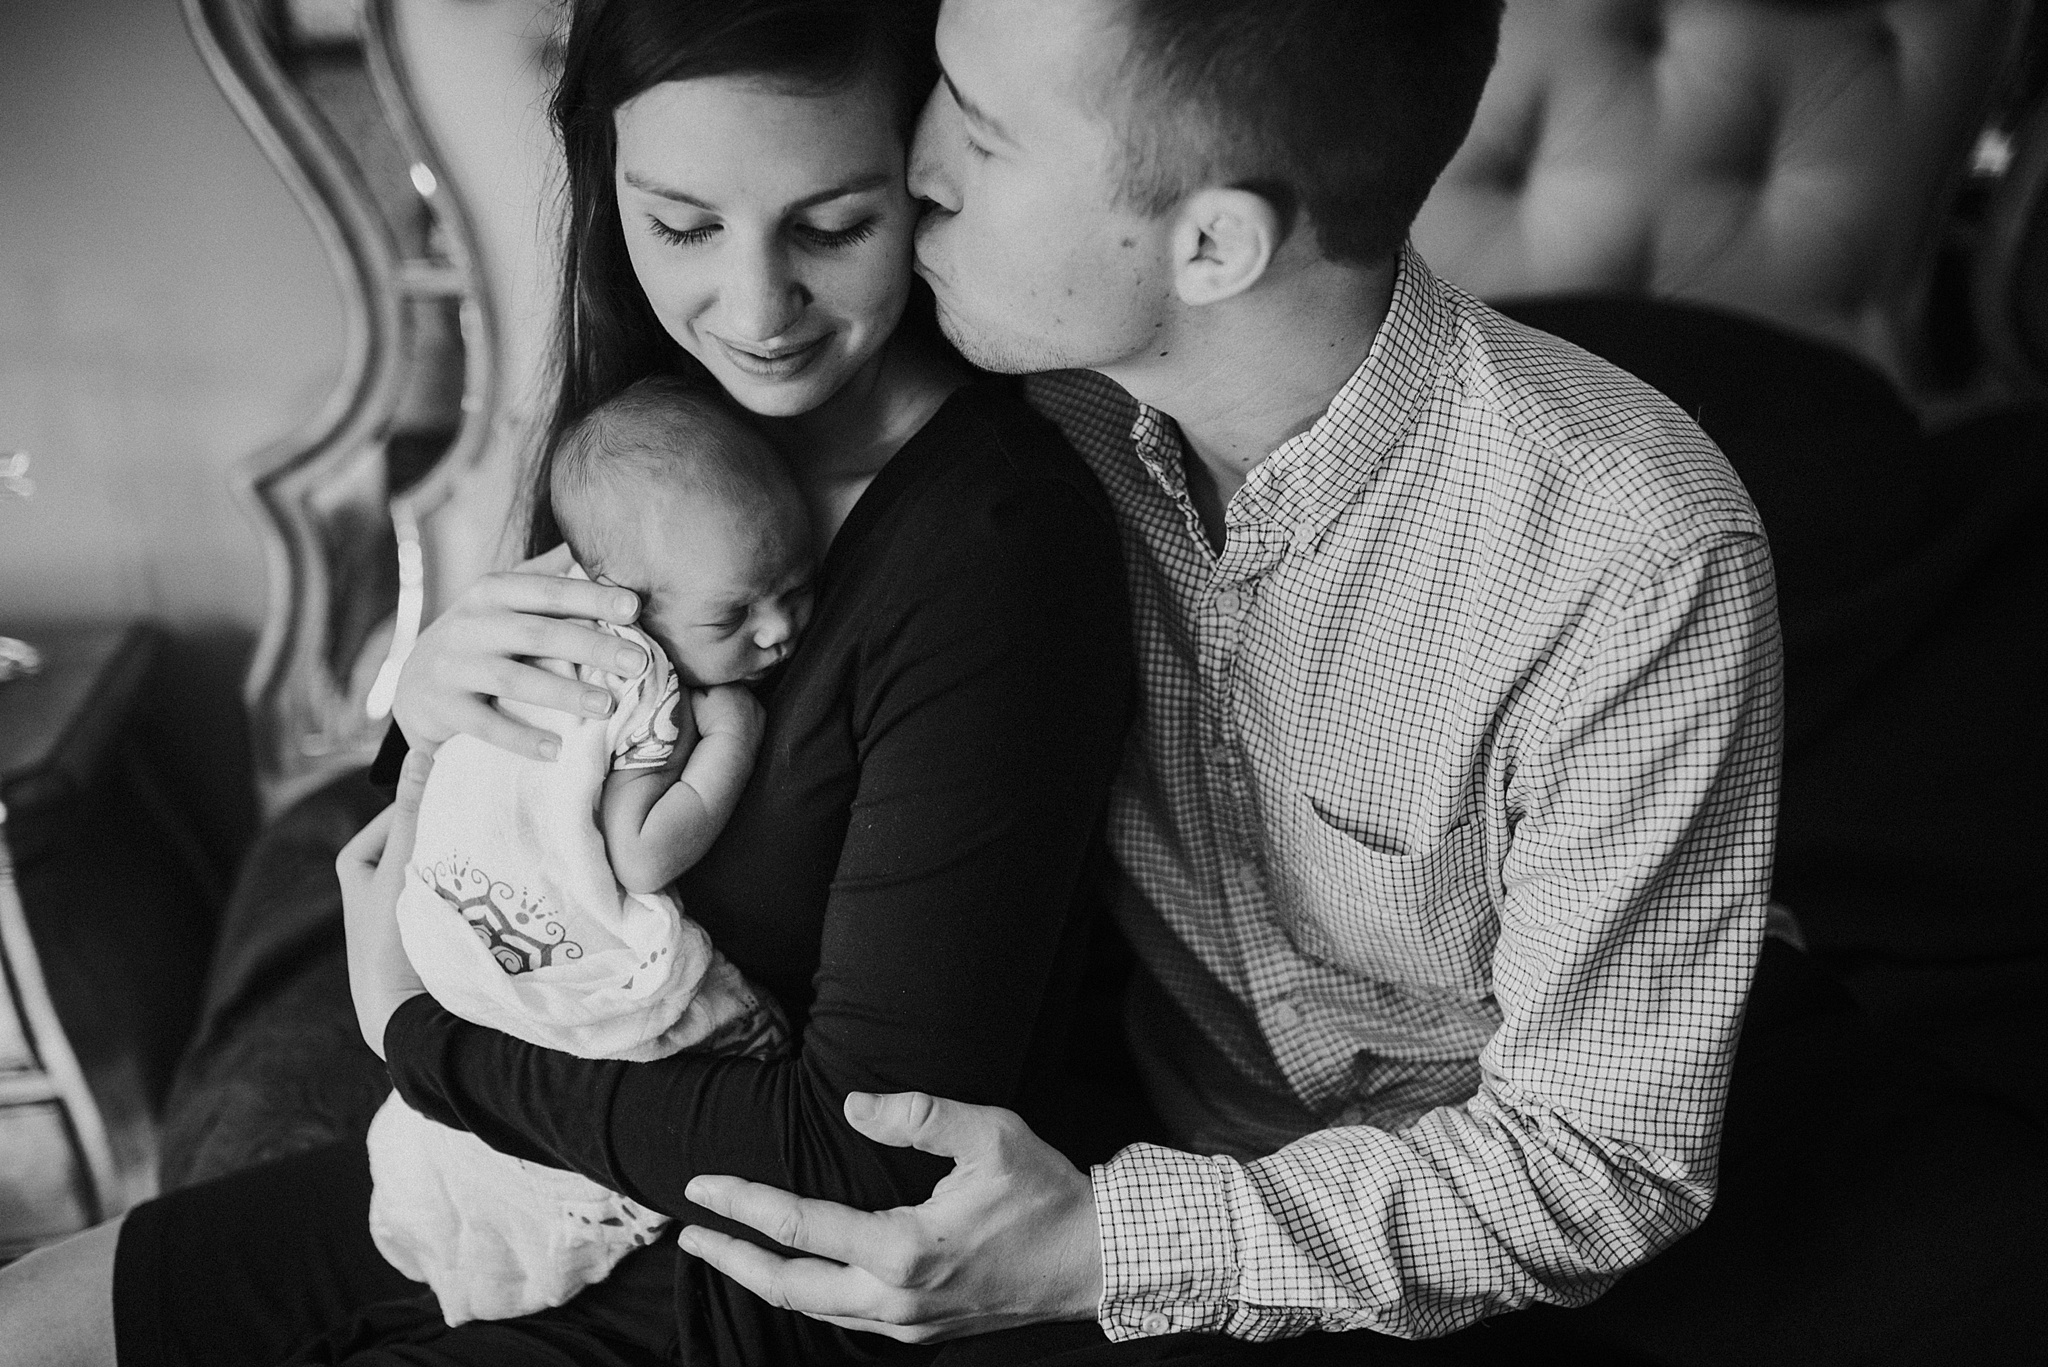 Natural-In-Home-Lifestyle-Newborn-Family-Photographer-Pittsburgh-Rachel-Rossetti-Photography_0042.jpg